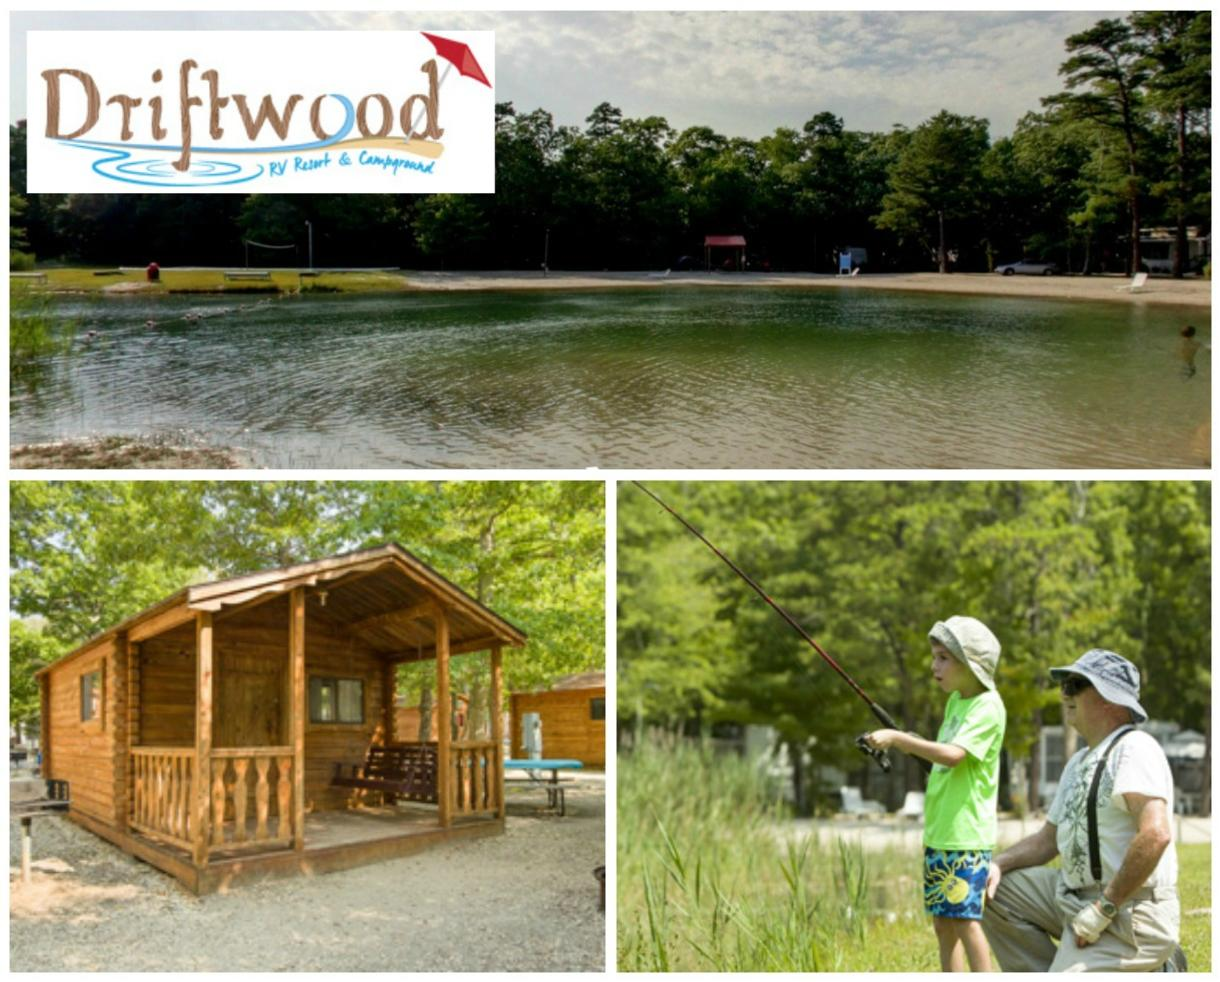 $73+ for 2-Night Getaway at Driftwood RV & Camping Resort - Cape May, NJ (25% Off)